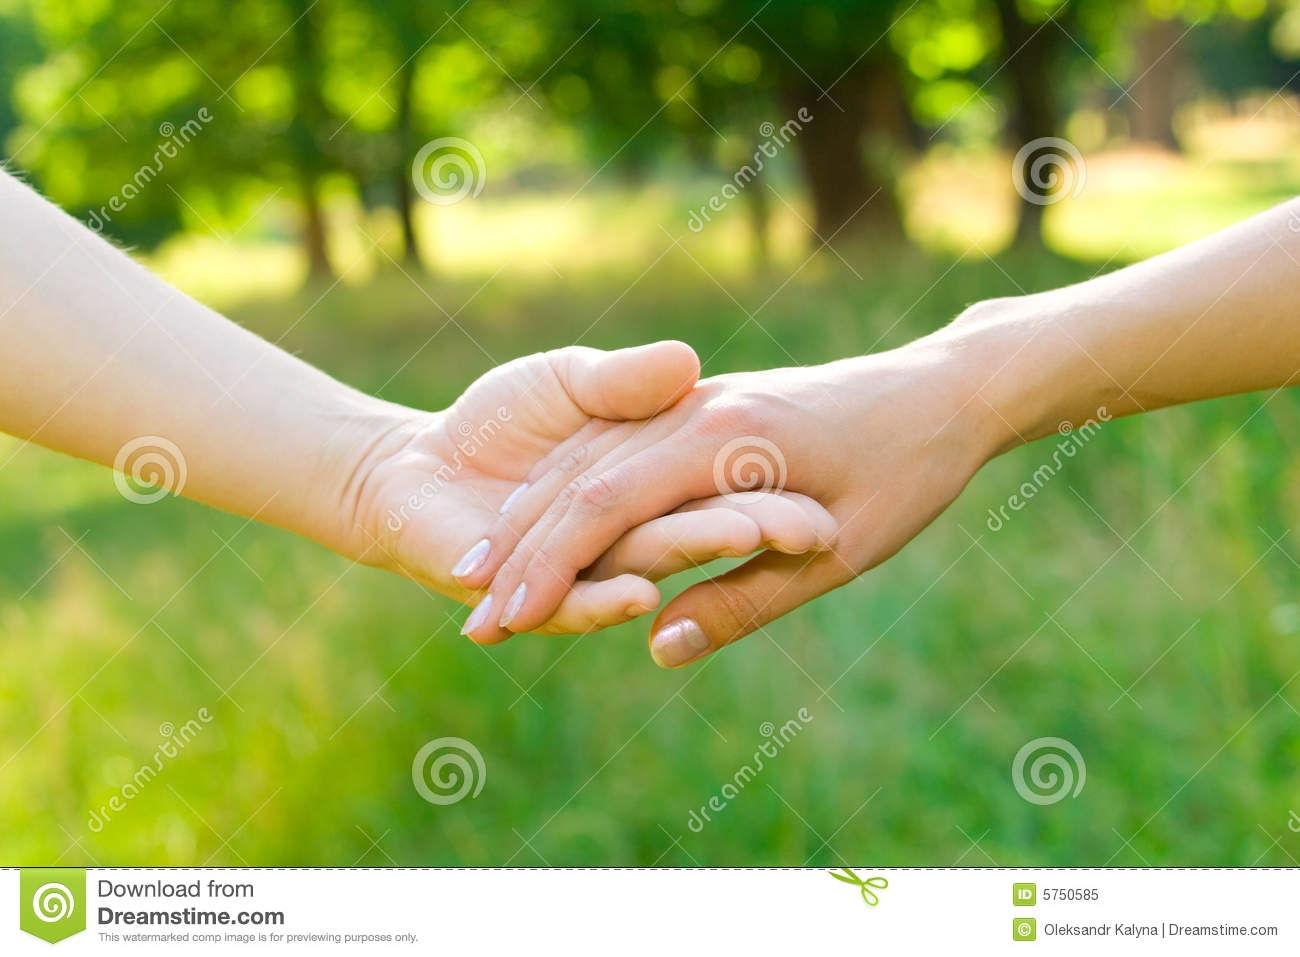 Best-images-of-love-with-friendship-Love-And-Friendship-Concept-Hands-Royalty-Free-Stock-Photo-i-wallpaper-wp3403169